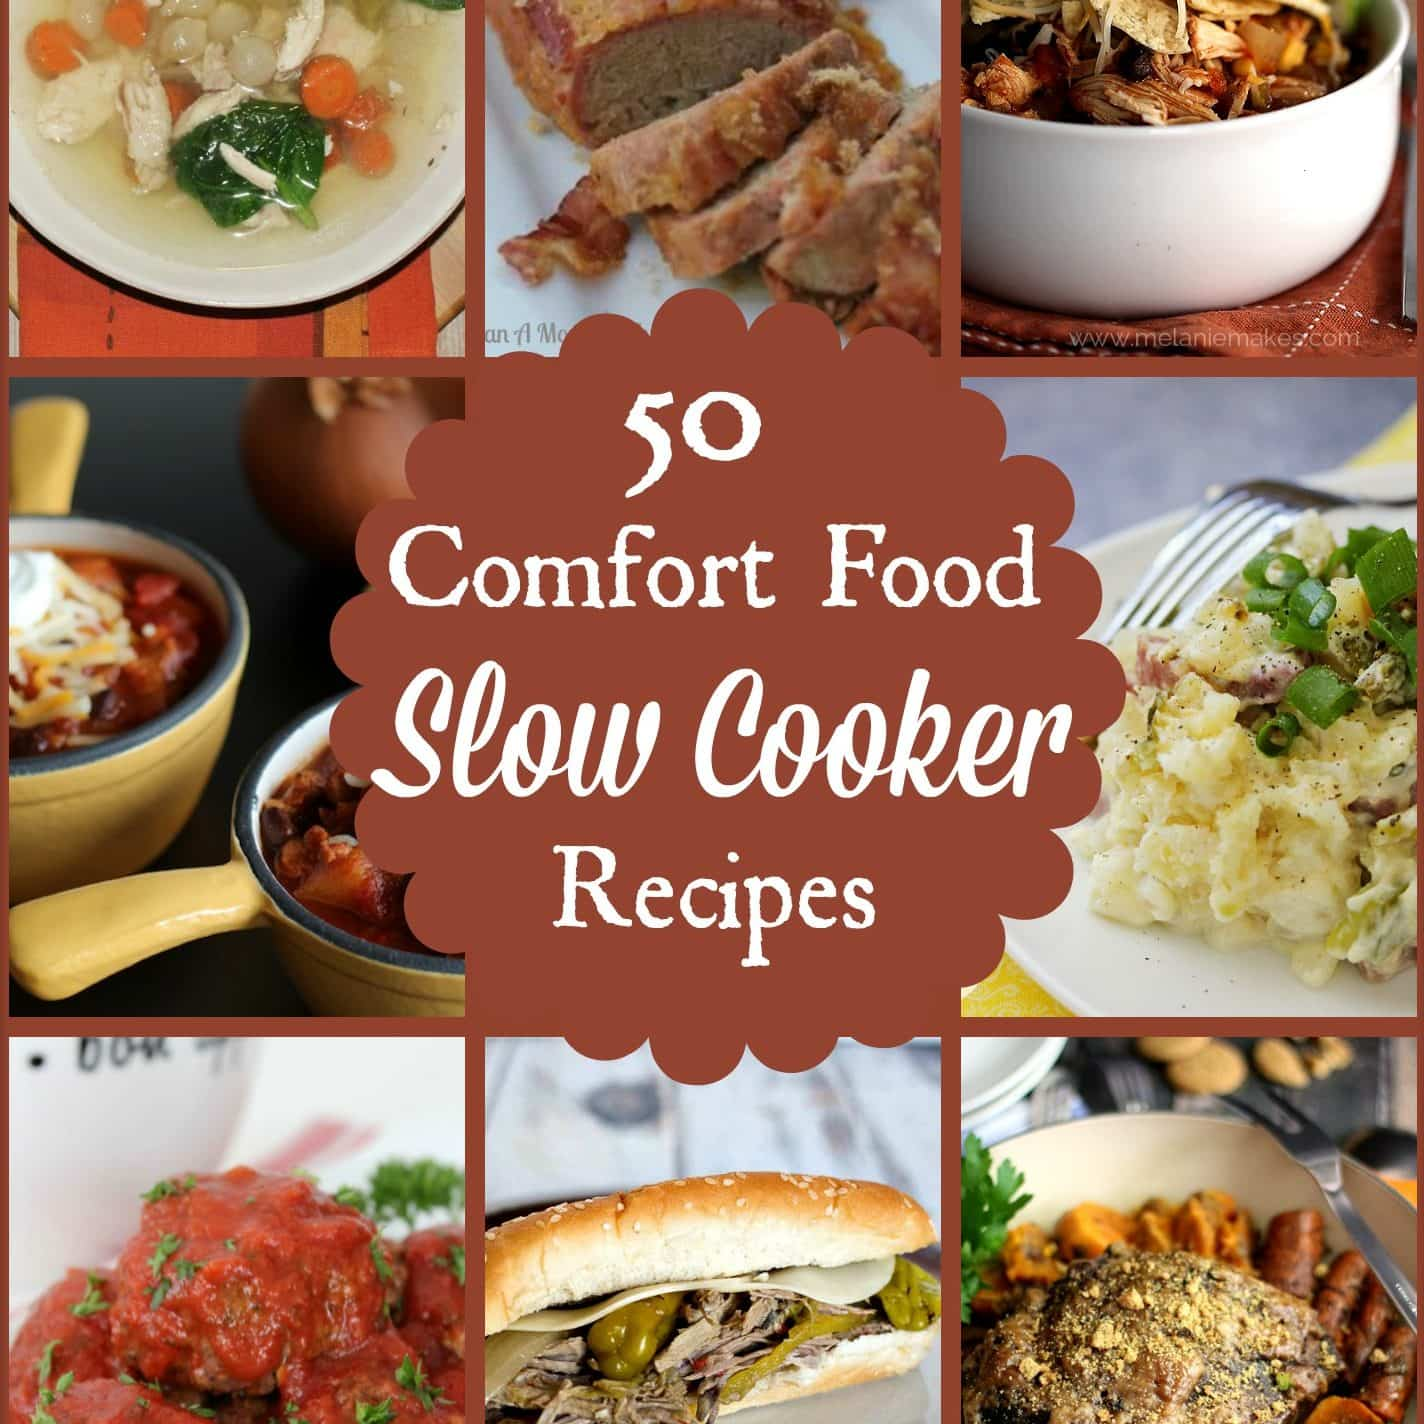 50 Classic Comfort Food Recipes For The Slow Cooker